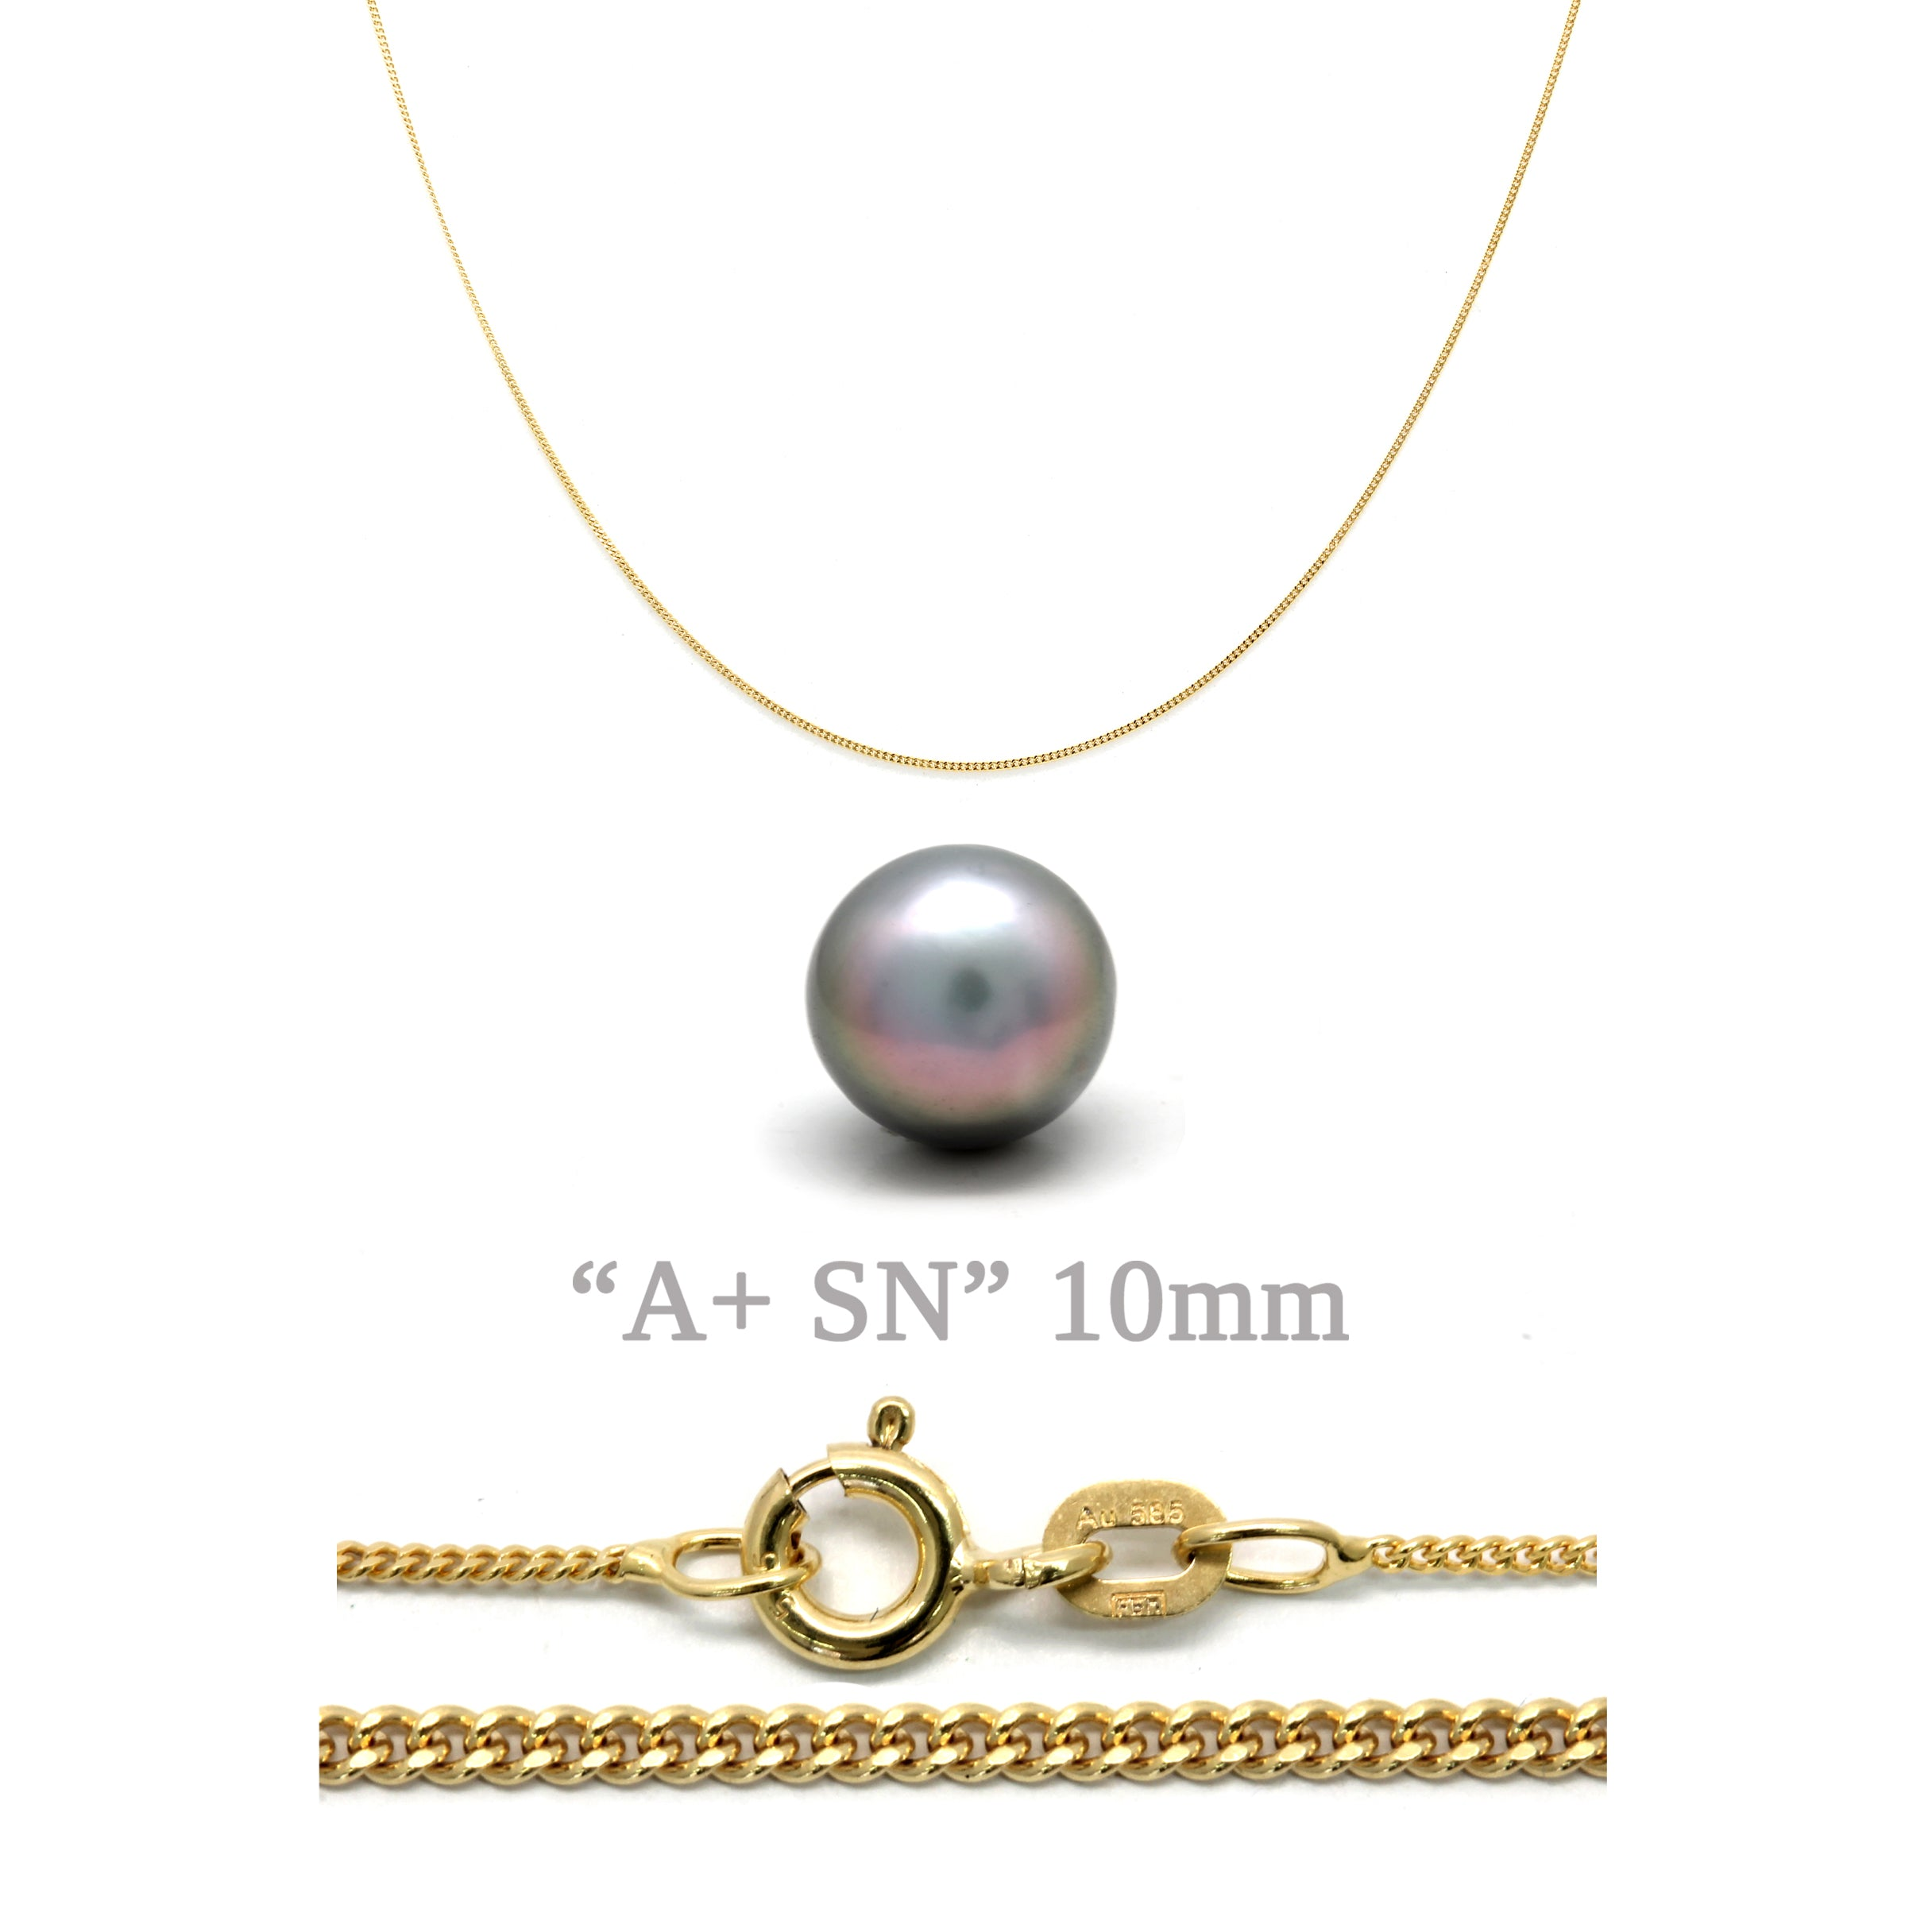 Make-Your-Own Gold Chain with Cortez Pearl